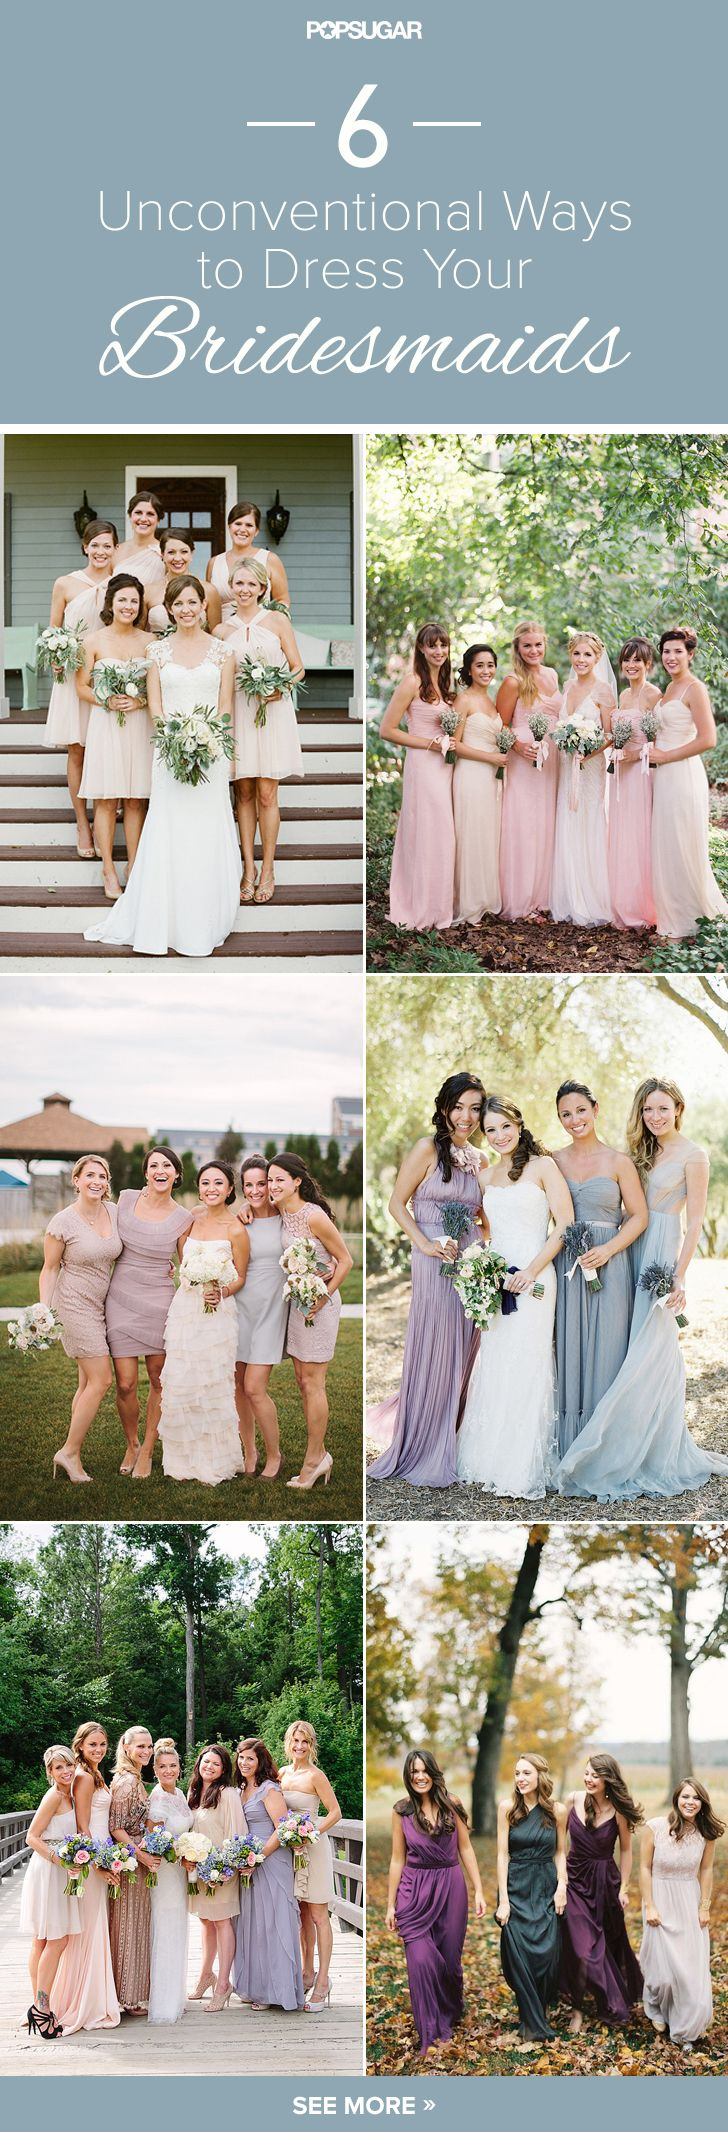 6 Unconventional Ways to Dress Your Bridesmaidshttp://www.popsugar.com/fashion/Bridesmaid-Dresses-Inspiration-35248759?stream_view=1#comments